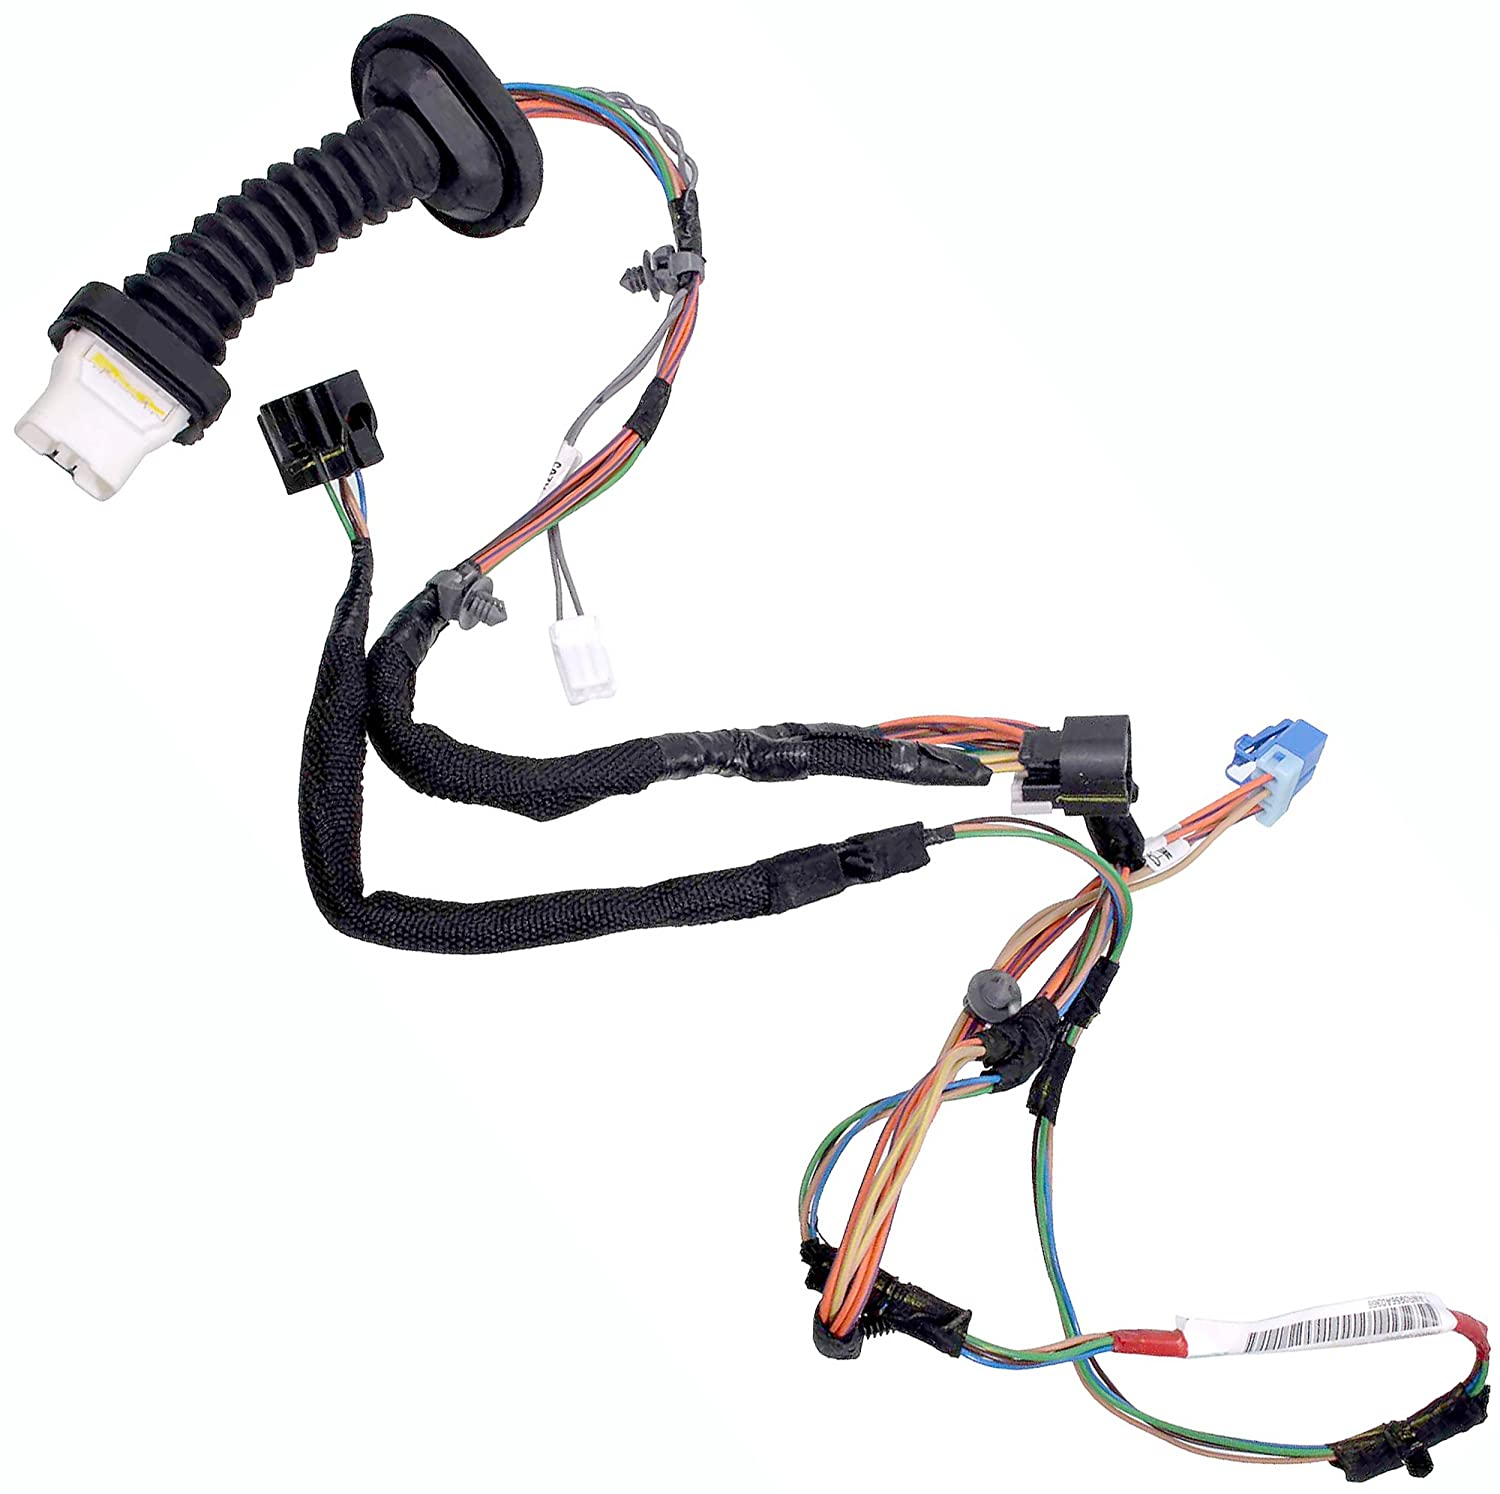 Apdty 133803 Power Door Lock Wiring Pigtail Connector Gmc Sierra Harness Complete Assembly Fits Rear Left Or Right On 2006 2009 Dodge Ram 2500 3500